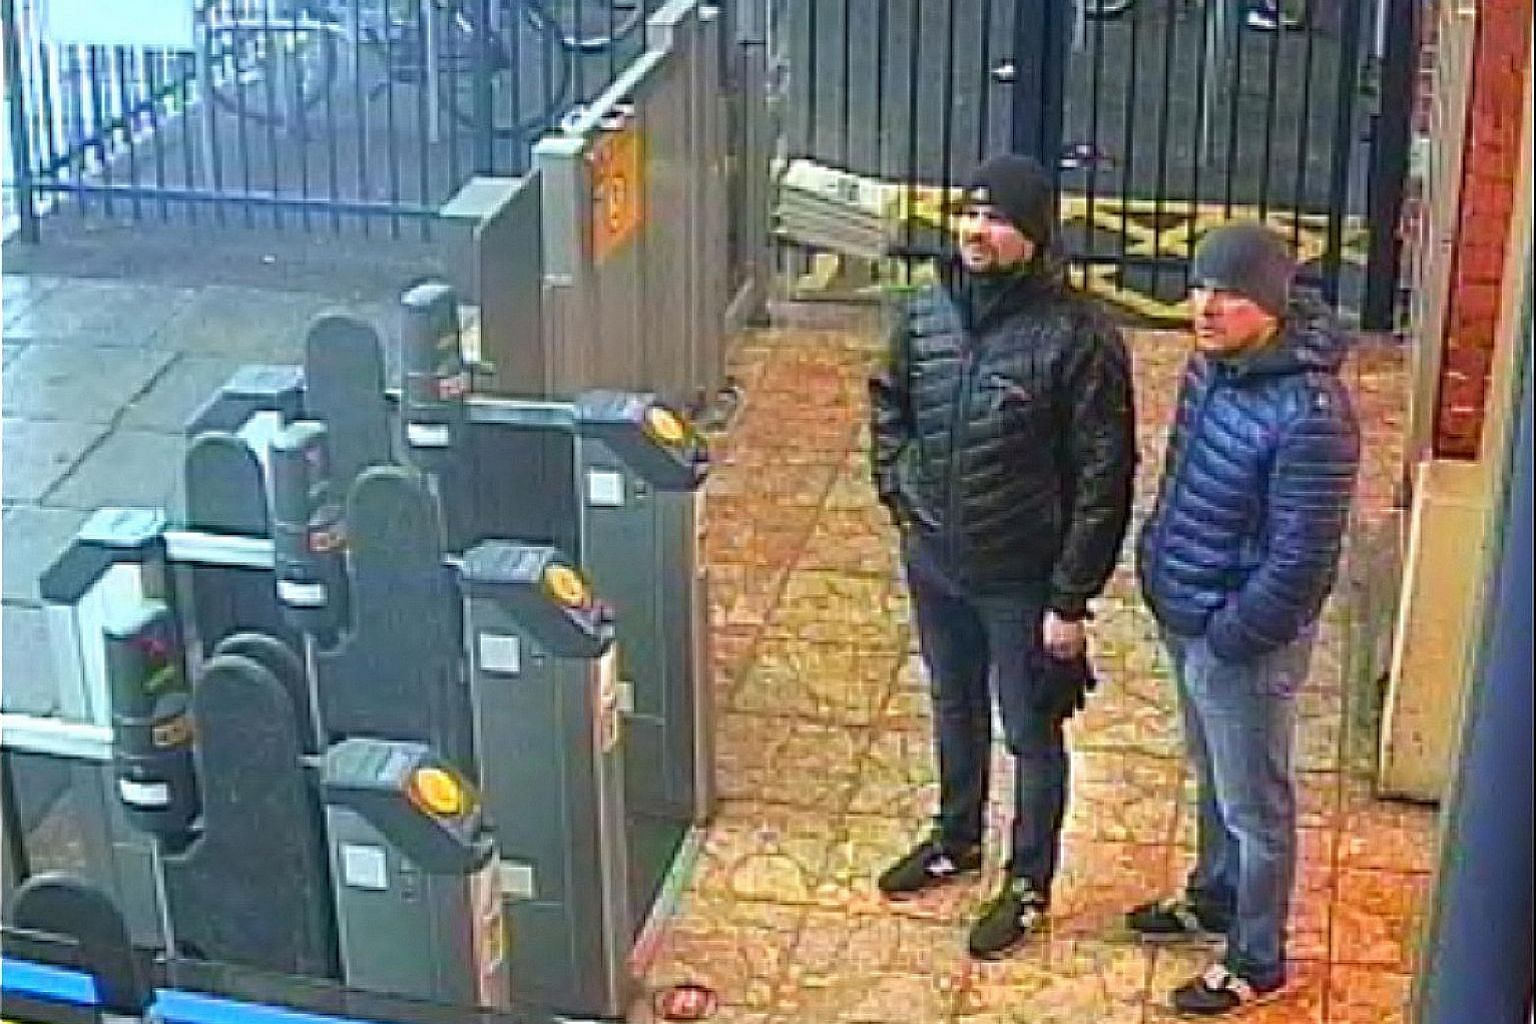 A handout photo taken in Salisbury on March 3 showing Alexander Petrov (right) and Ruslan Boshirov, whom British police have identified as the men who tried to kill Mr Sergei Skripal and his daughter with Novichok.